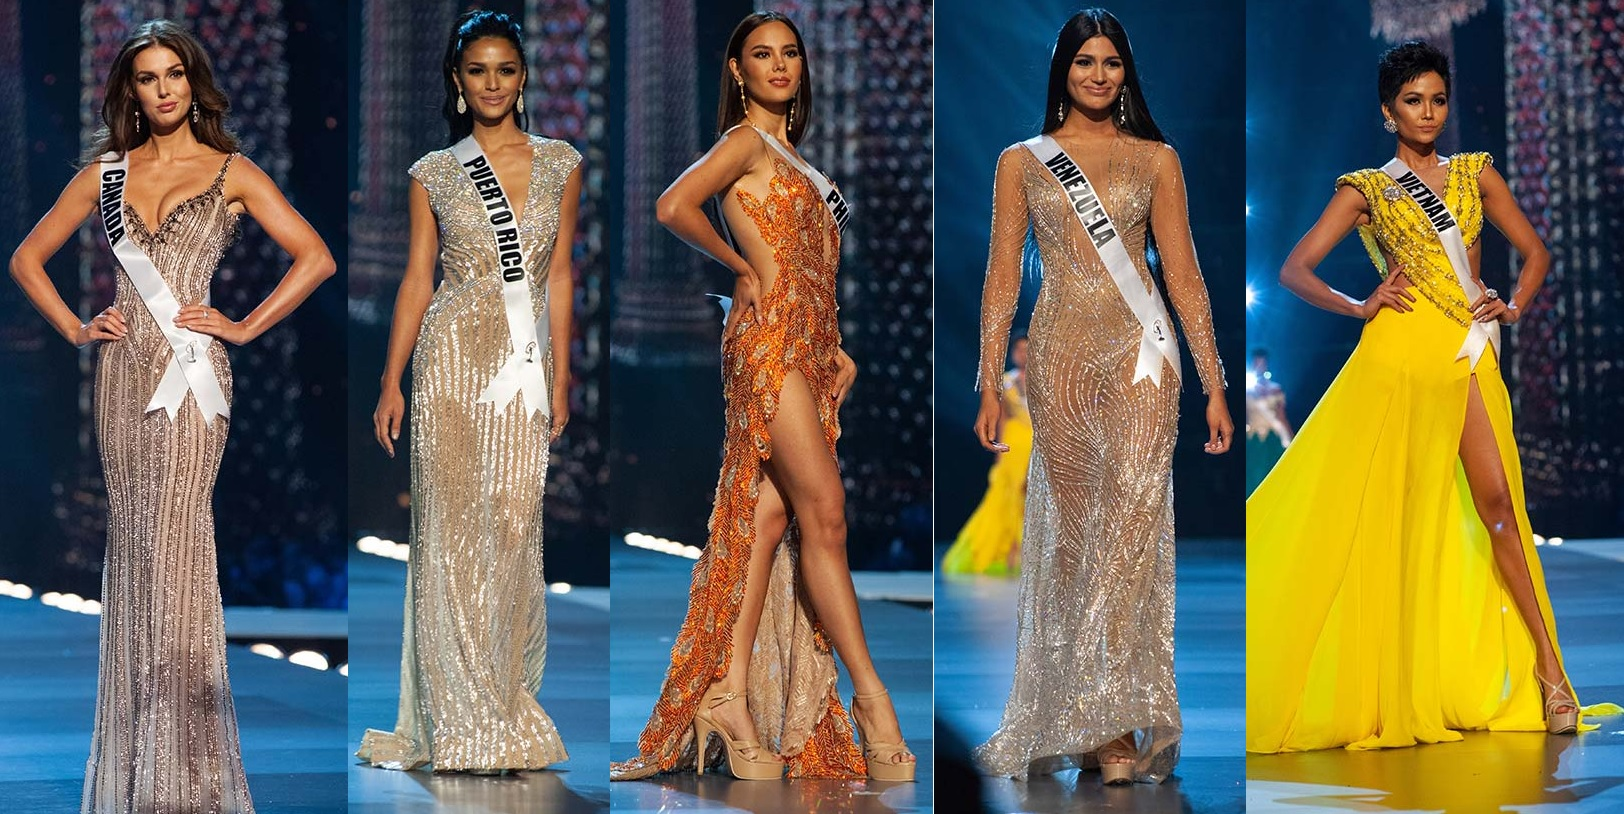 Uae Based Pinoy Fashion Designers Reveal Their Top Bets For Miss Universe The Filipino Times